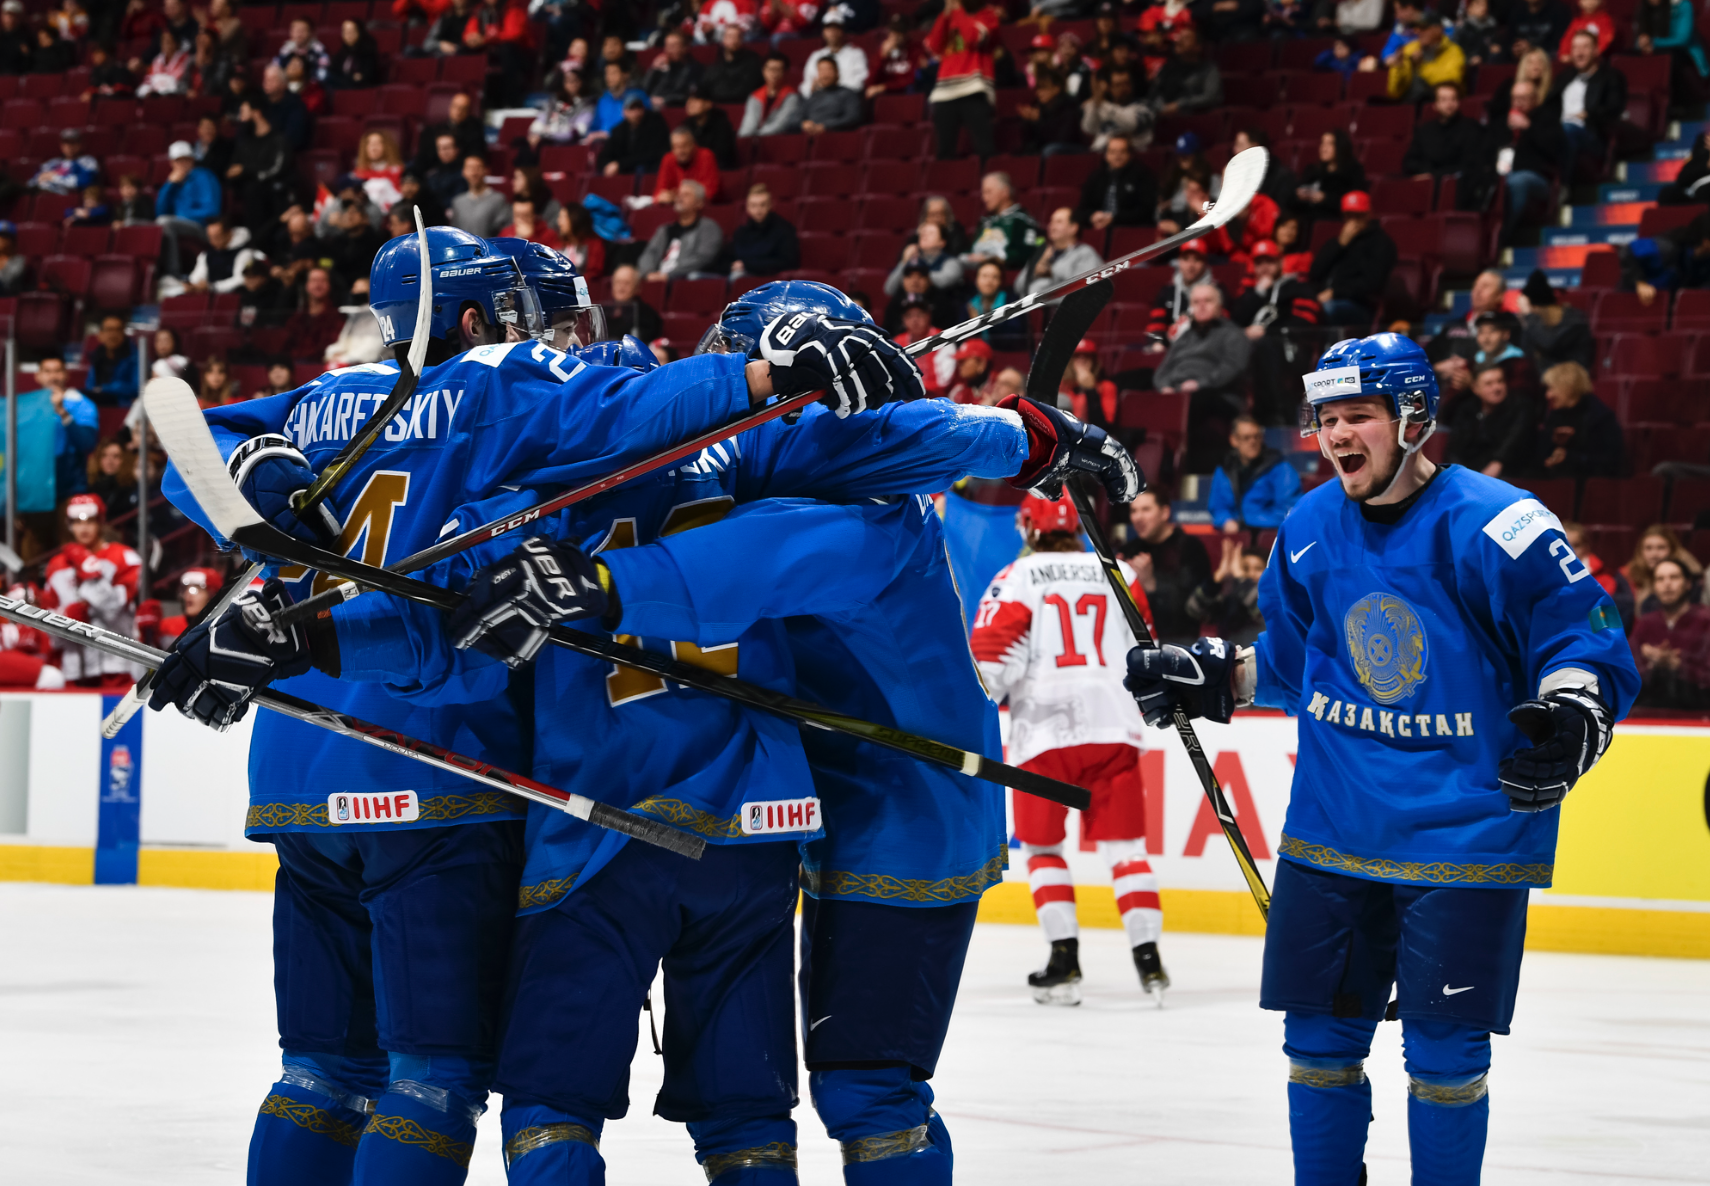 Kazakh Junior Hockey Team Wins Hearts At World Juniors